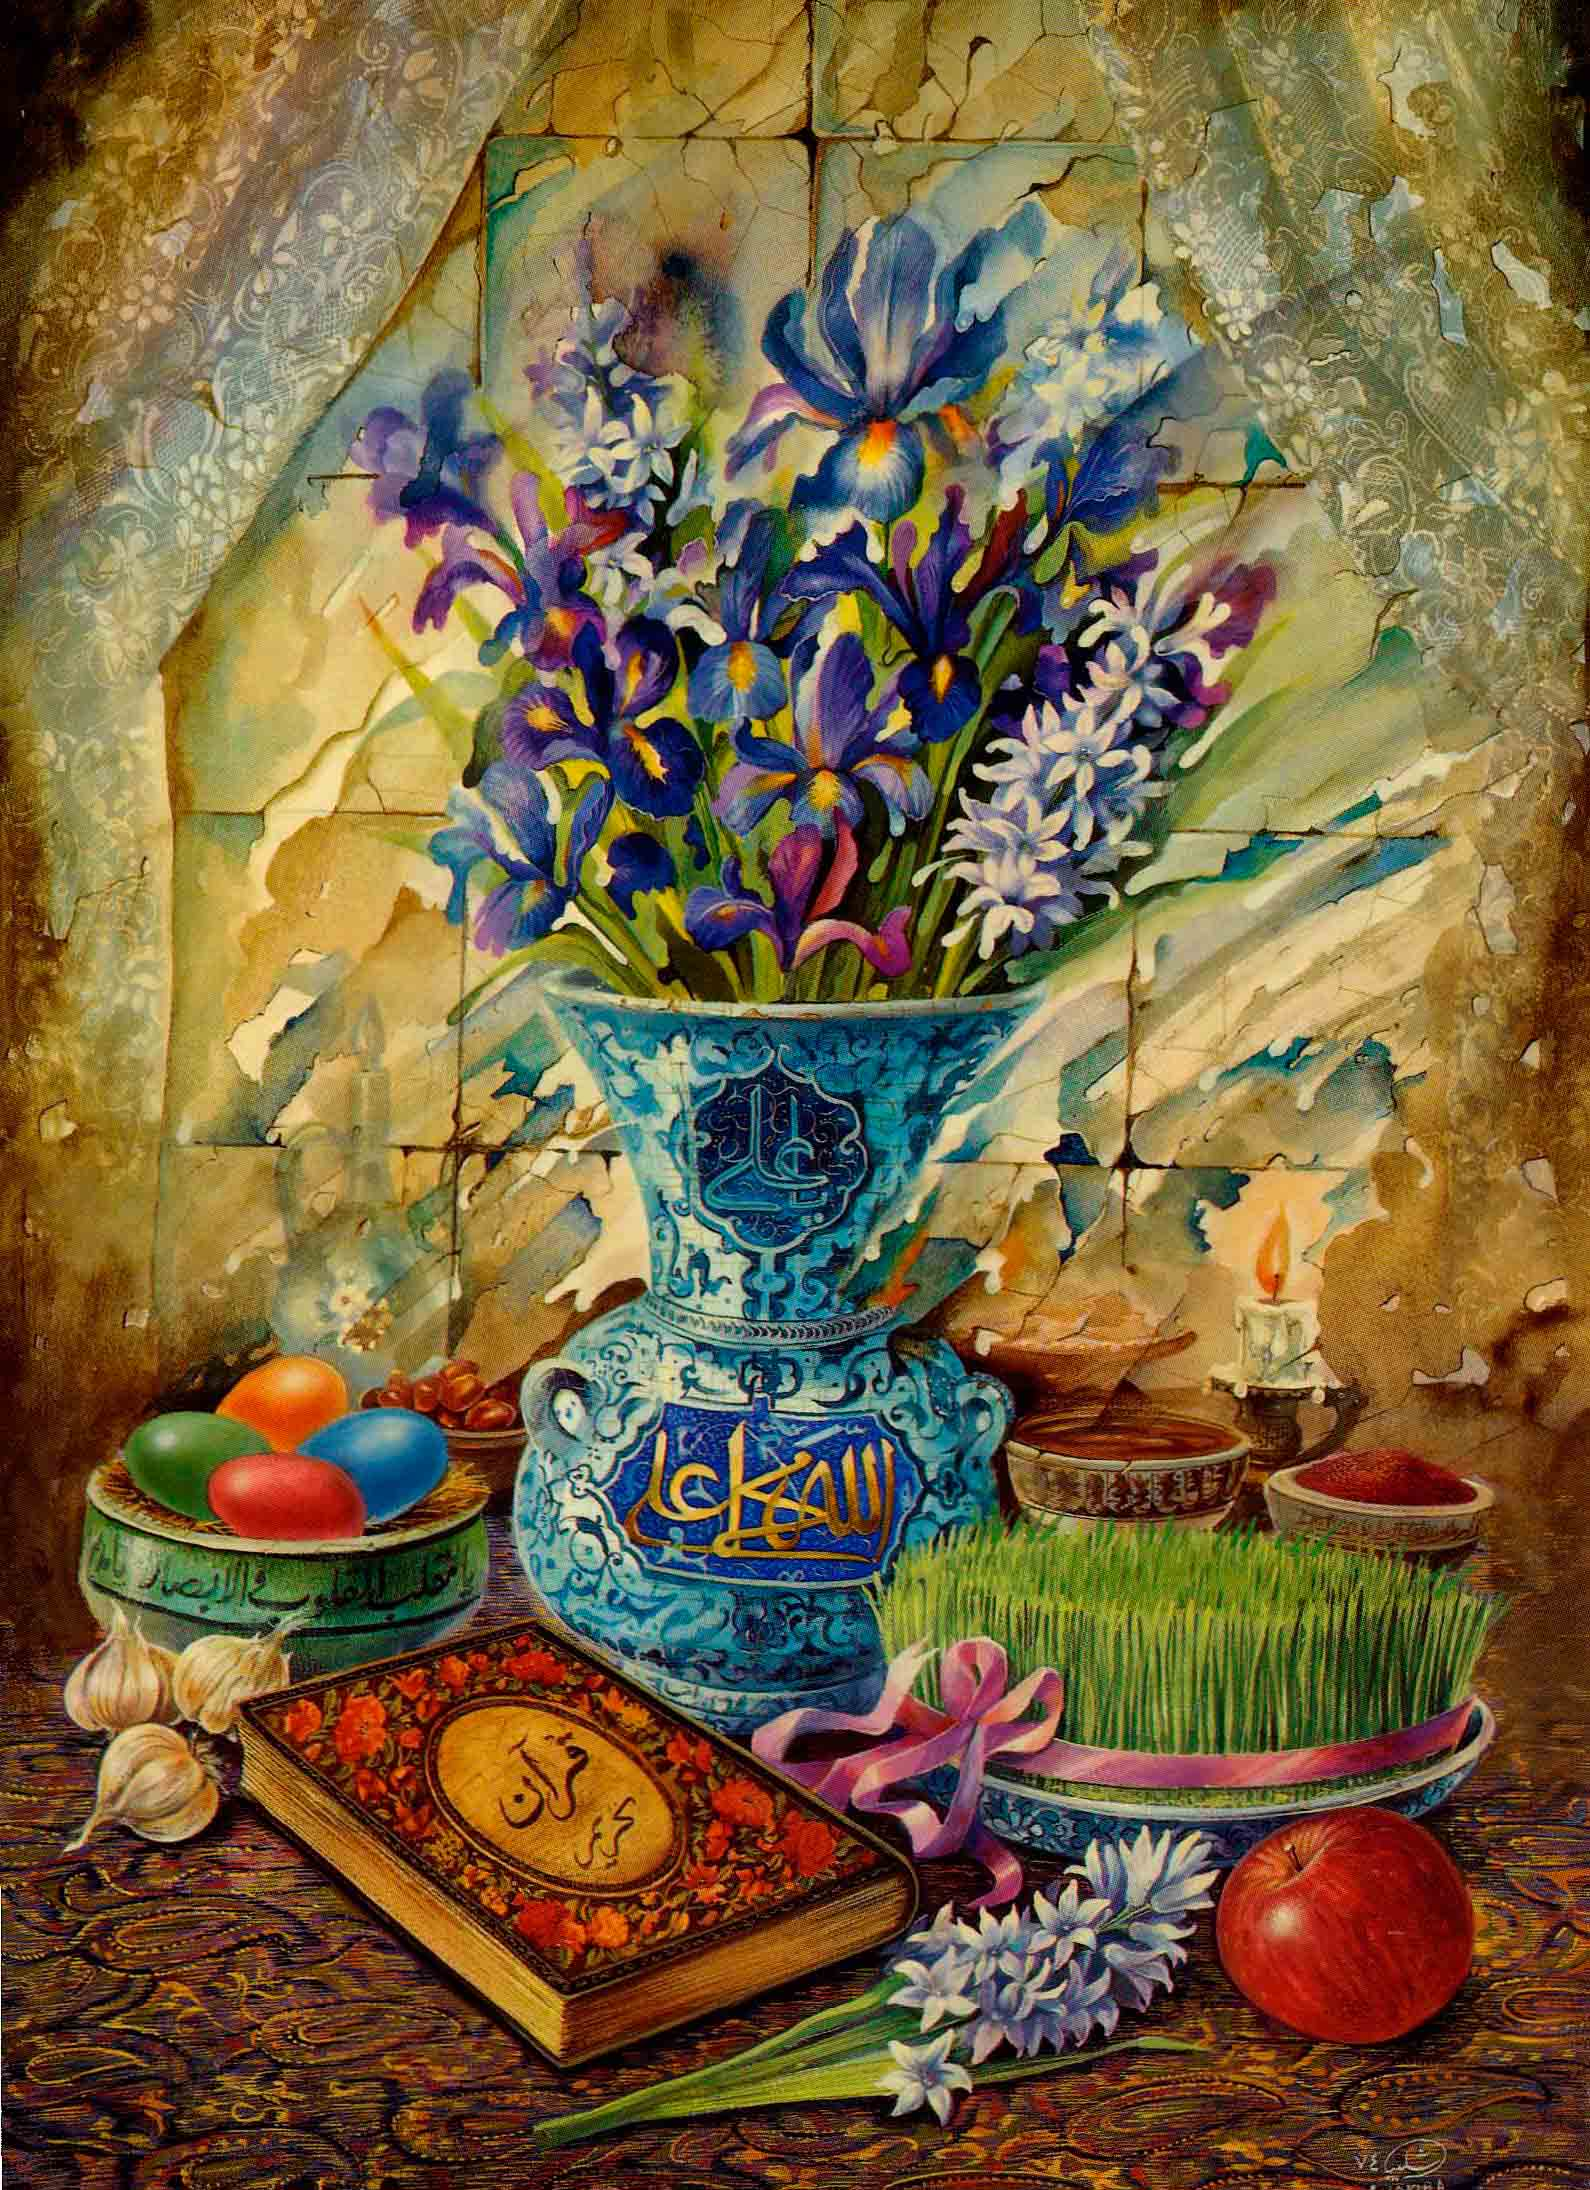 40 Best Nowruz Images On Pinterest Iran Food Iranian Food And Persian